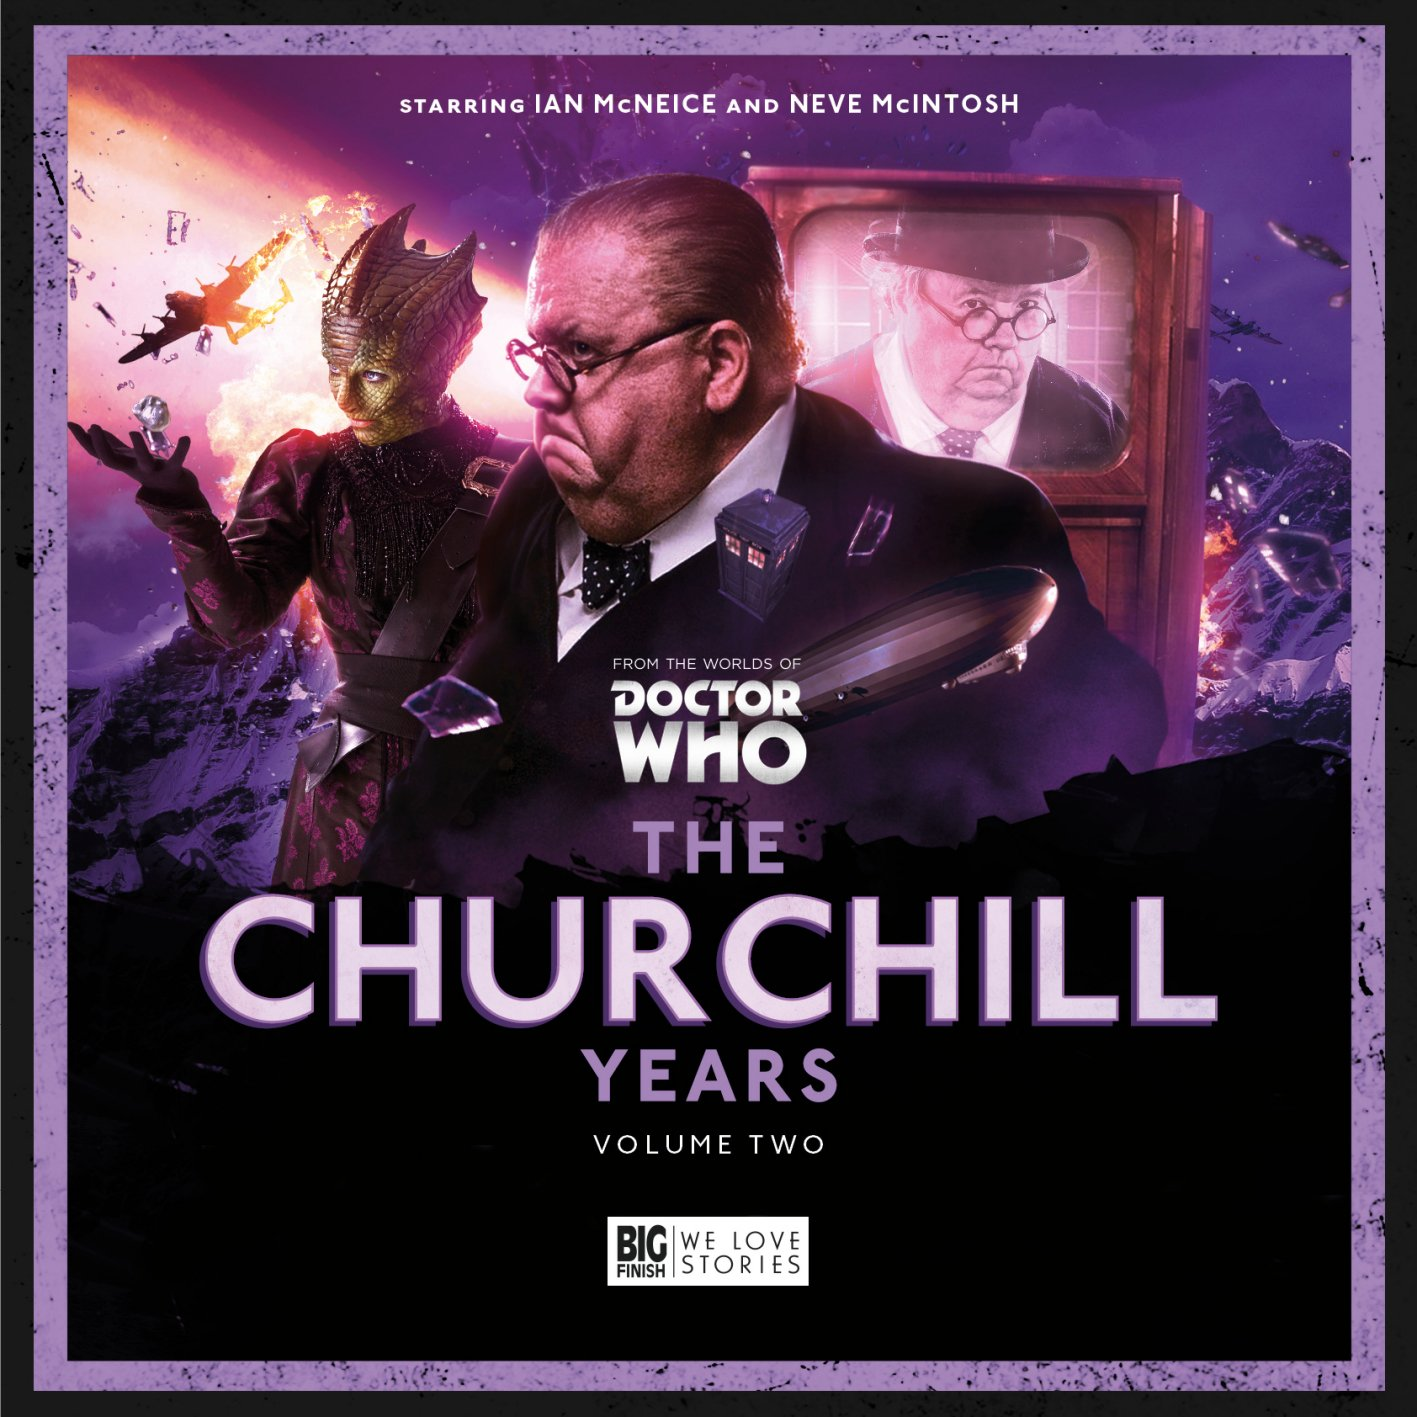 The Churchill Years - Volume 2 (Doctor Who - The Churchill Years) ebook